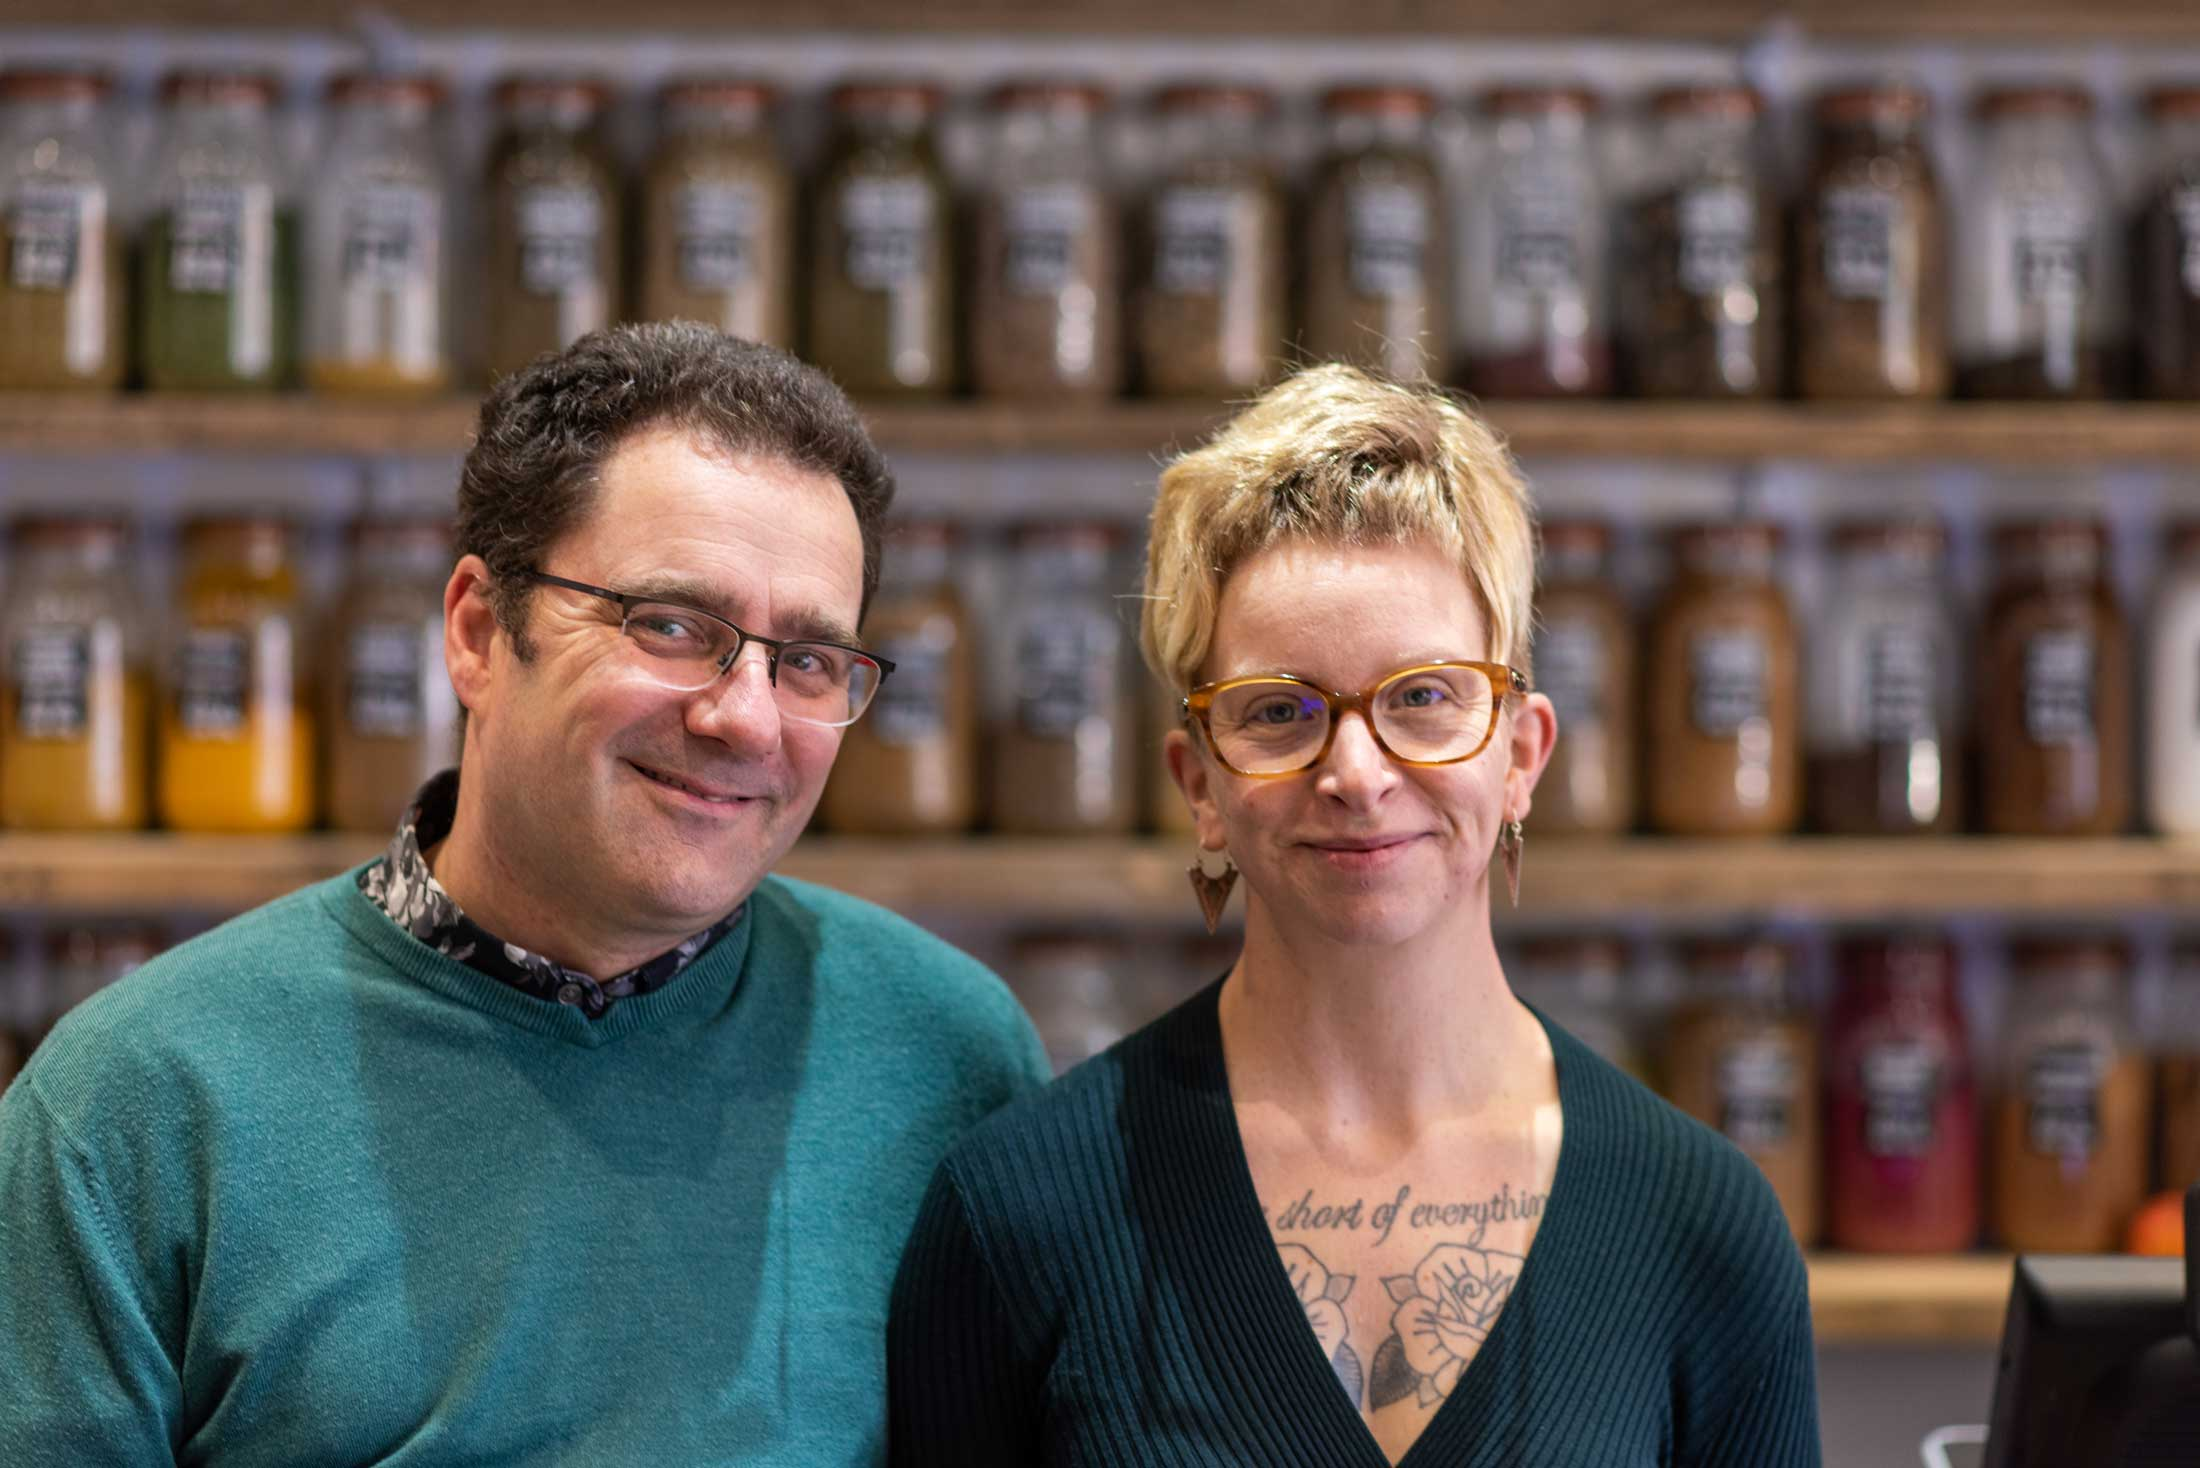 Owners of Zero Waste Eastbourne